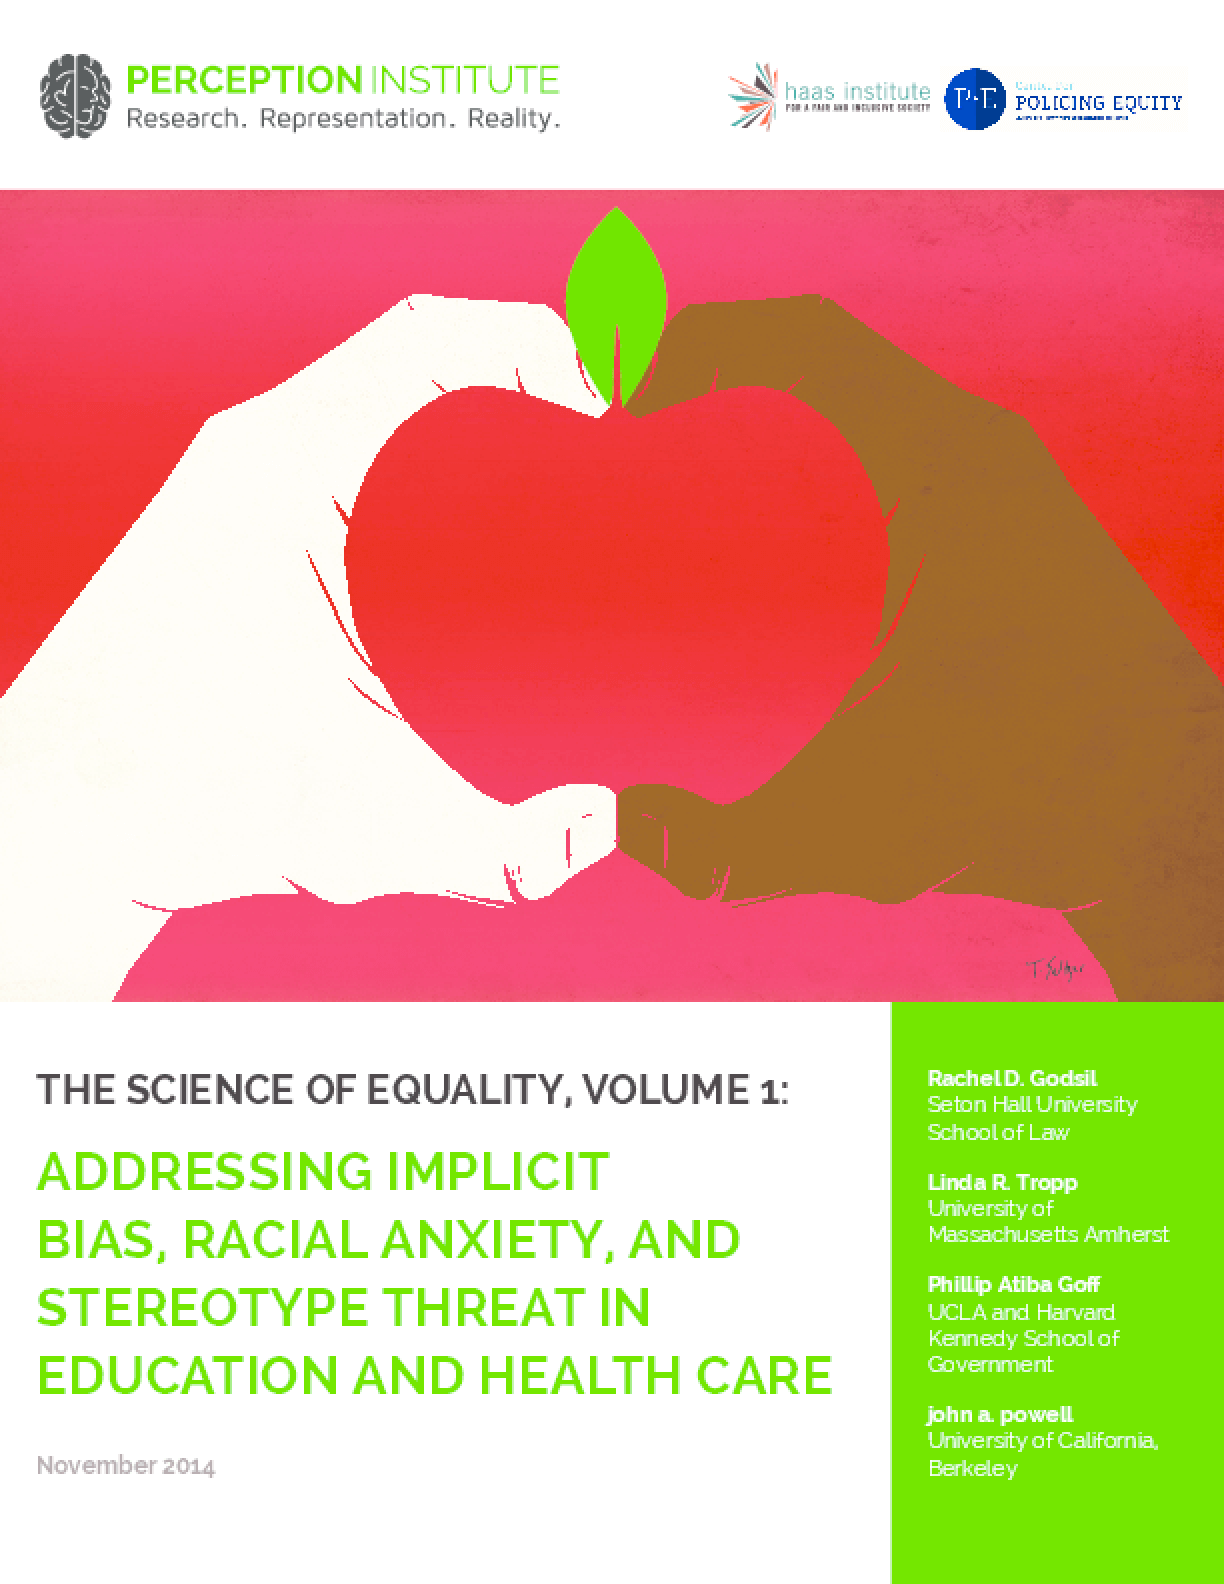 The Science of Equality Volume 1: Addressing Implicit Bias, Racial Anxiety, and Stereotype Threat in Education and Health Care